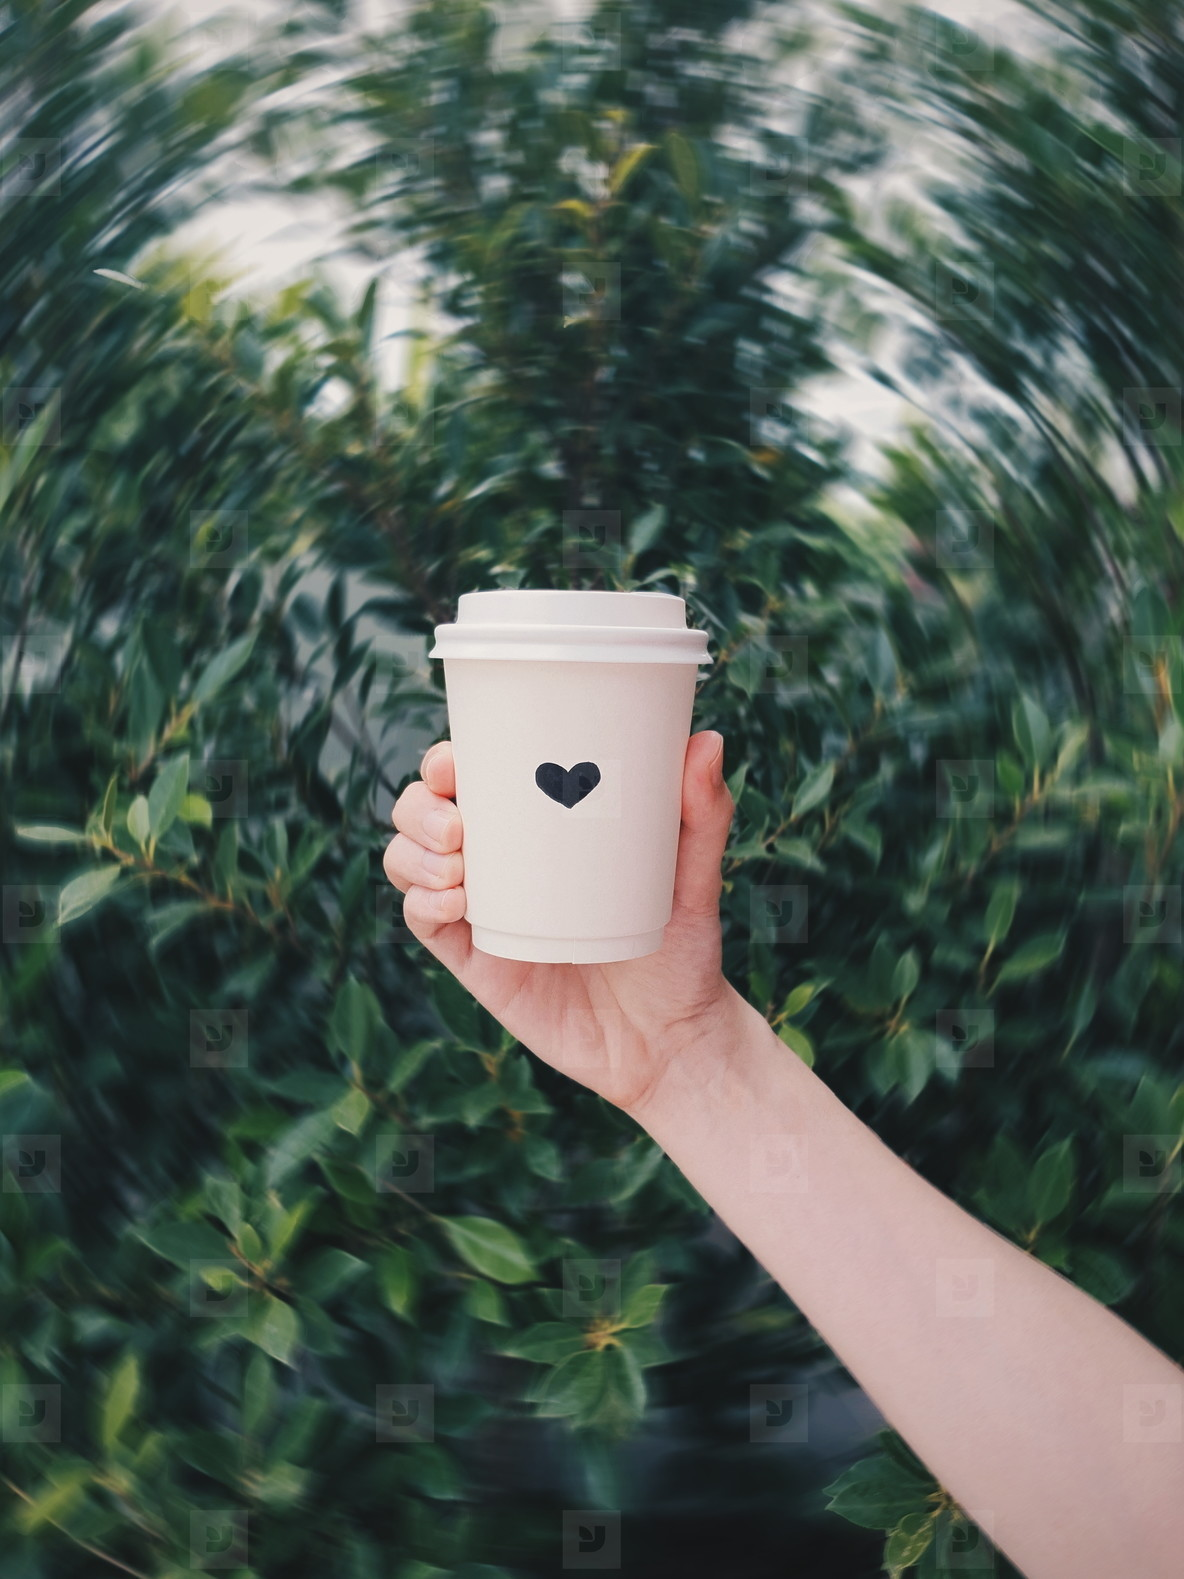 Hand holding paper cup